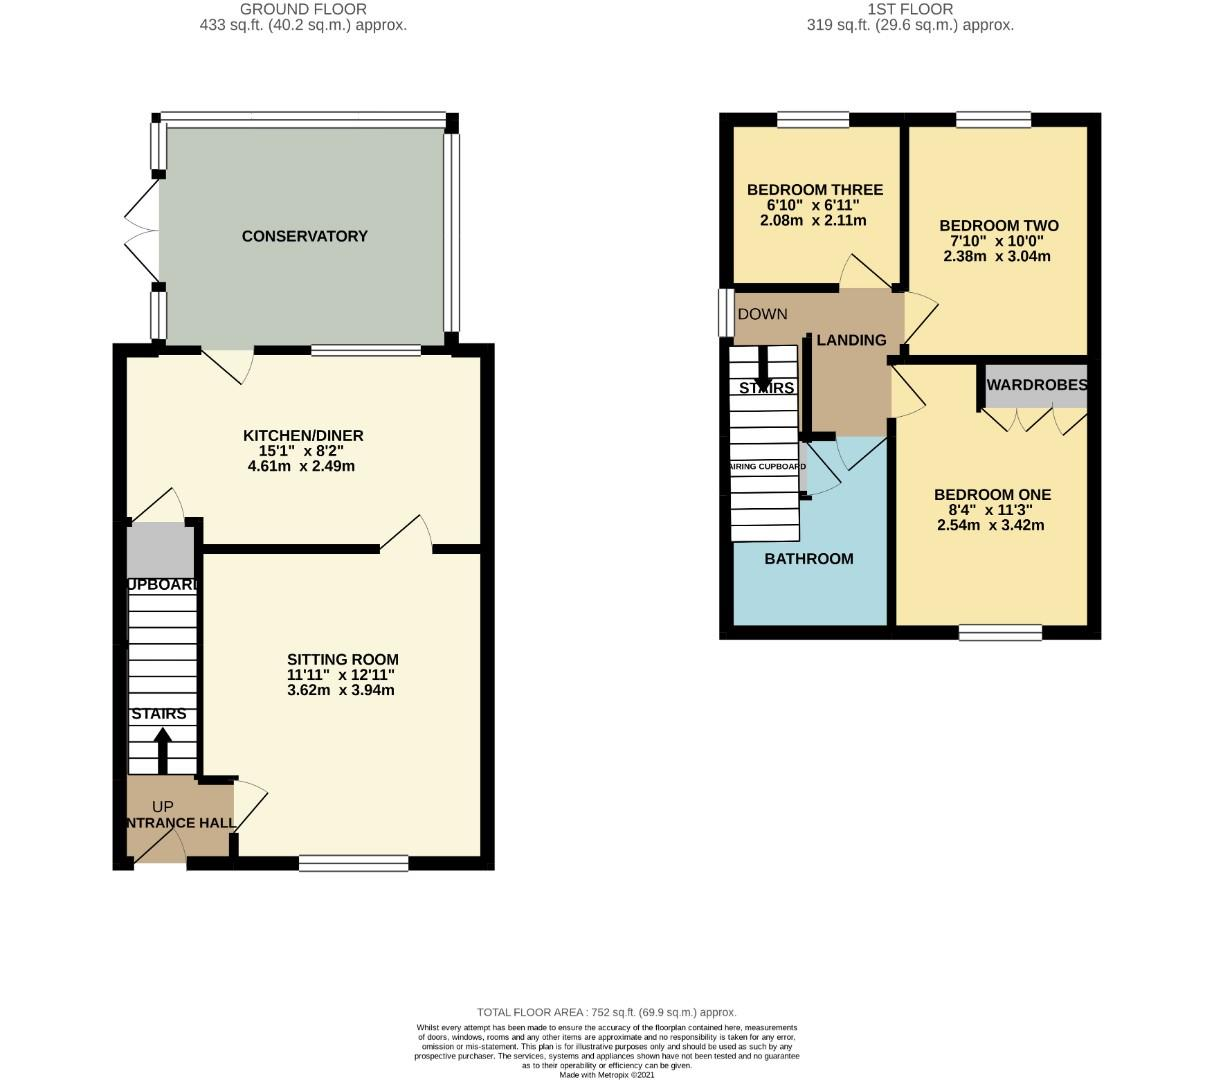 Floorplans For Cross Waters Close, Wootton, Northampton